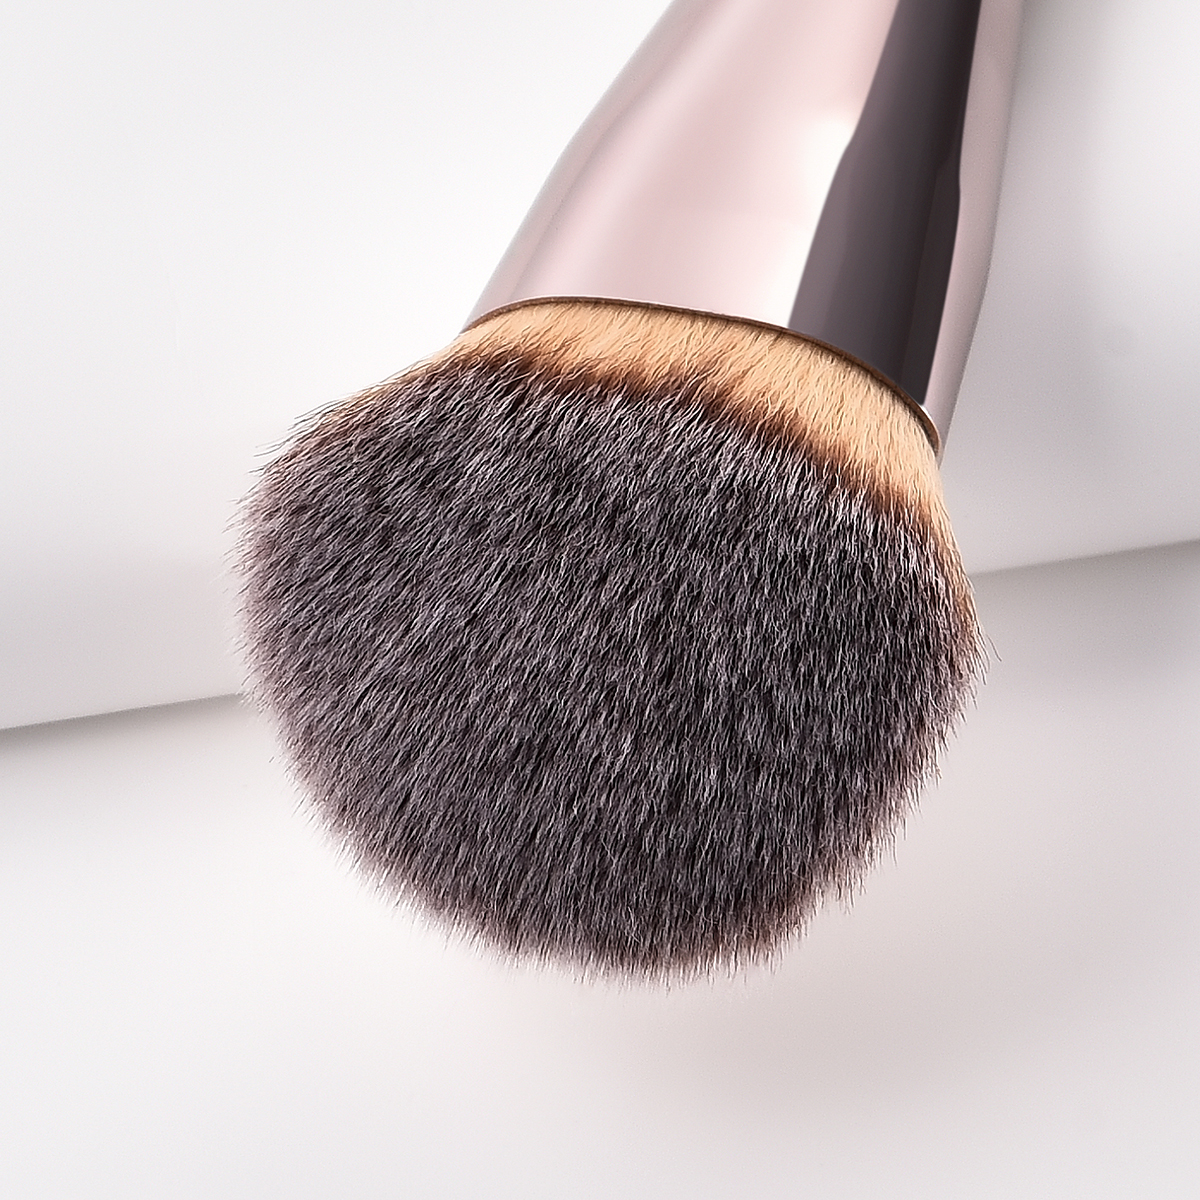 Image 4 - BBL 1 Piece Champagne Gold Precision Liquid Foundation Brush Perfect Pro Tapered Buffing Sculpting Angled Makeup Brushes Tools-in Eye Shadow Applicator from Beauty & Health